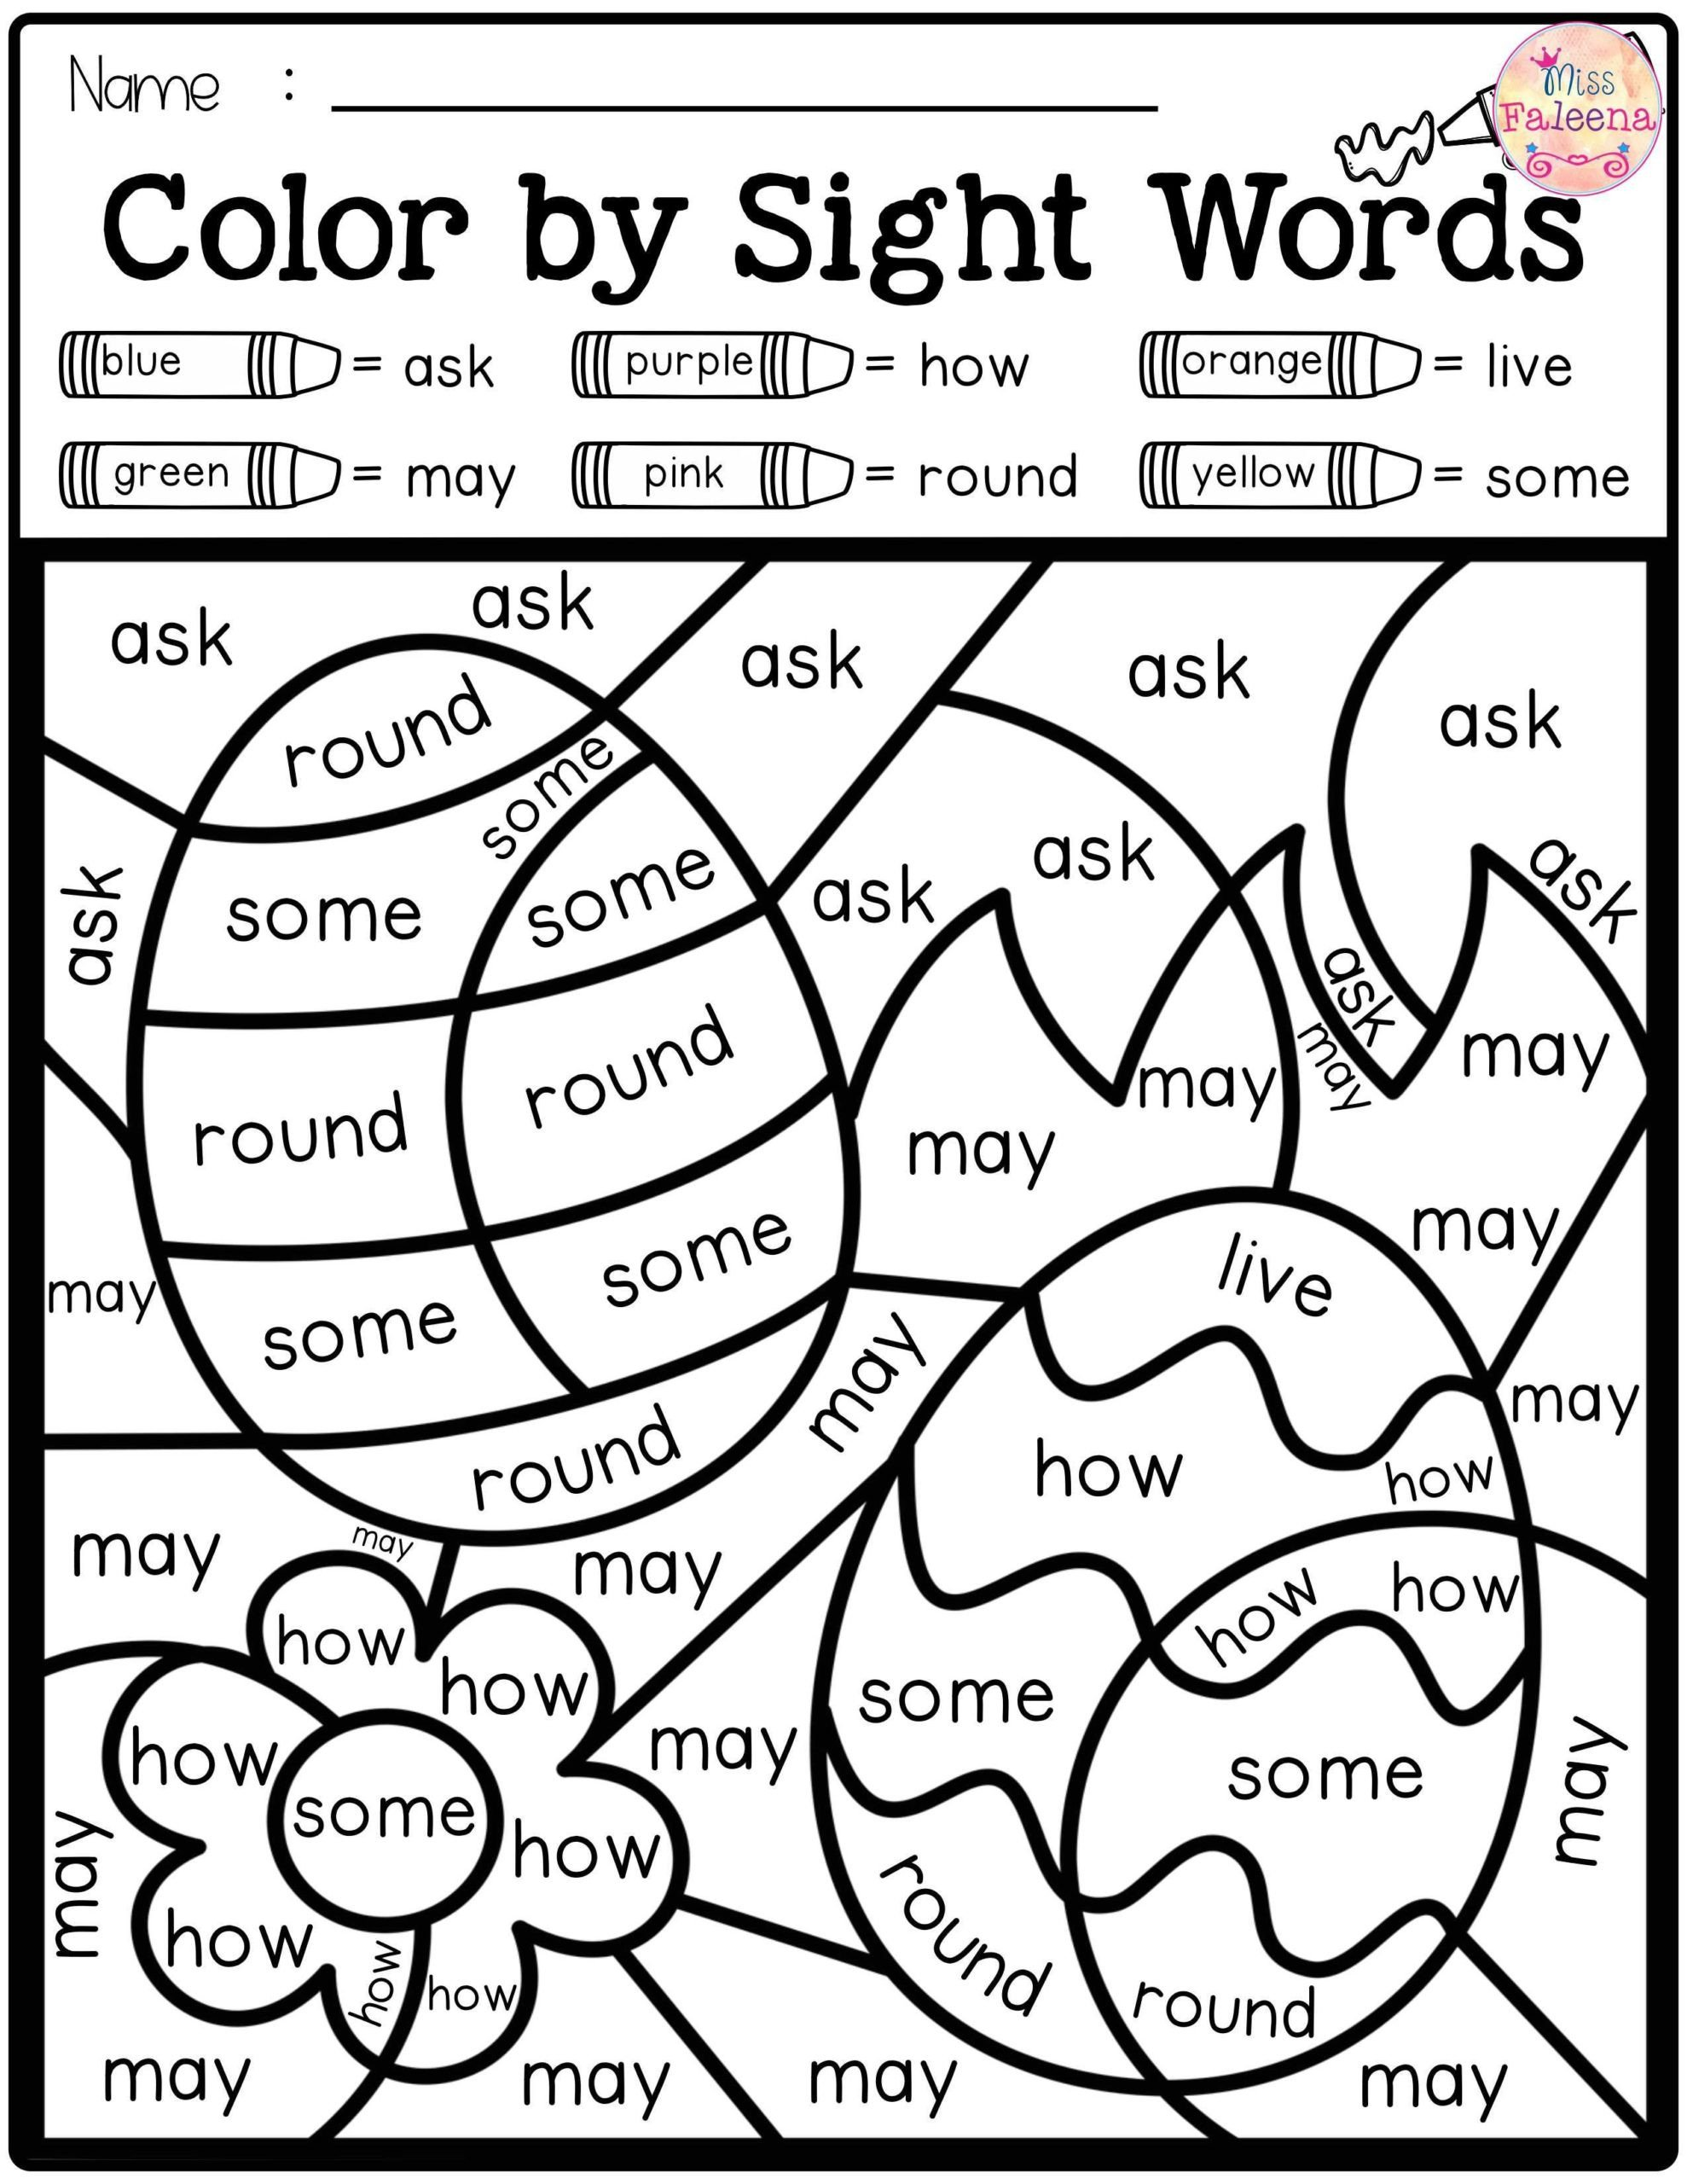 Free Color Word Worksheets astonishing Sight Word Coloring Pages – Stephenbenedictdyson